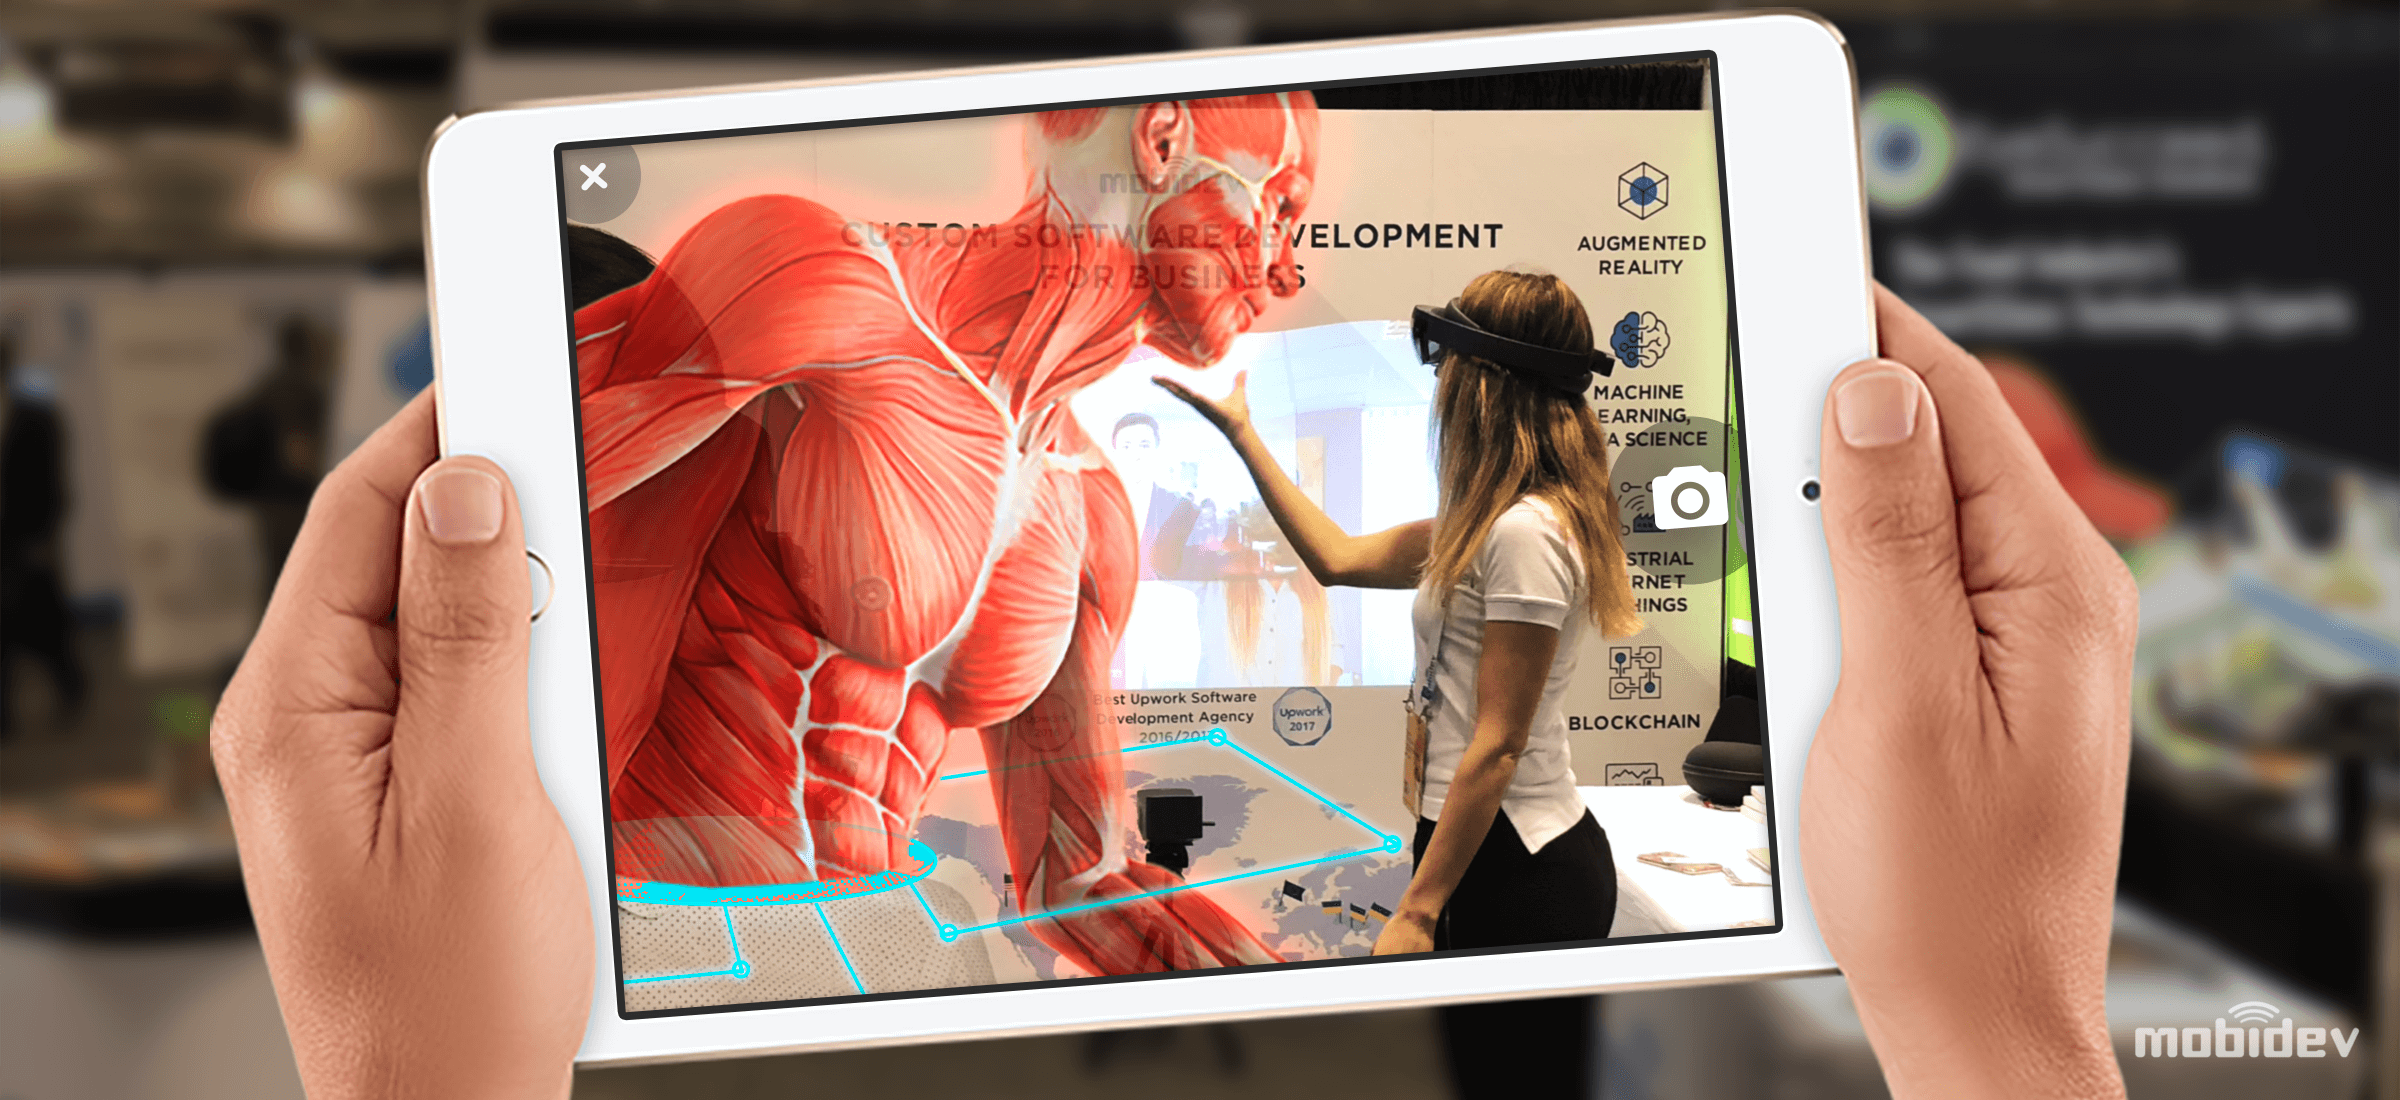 9 Augmented Reality Trends to Watch in 2020